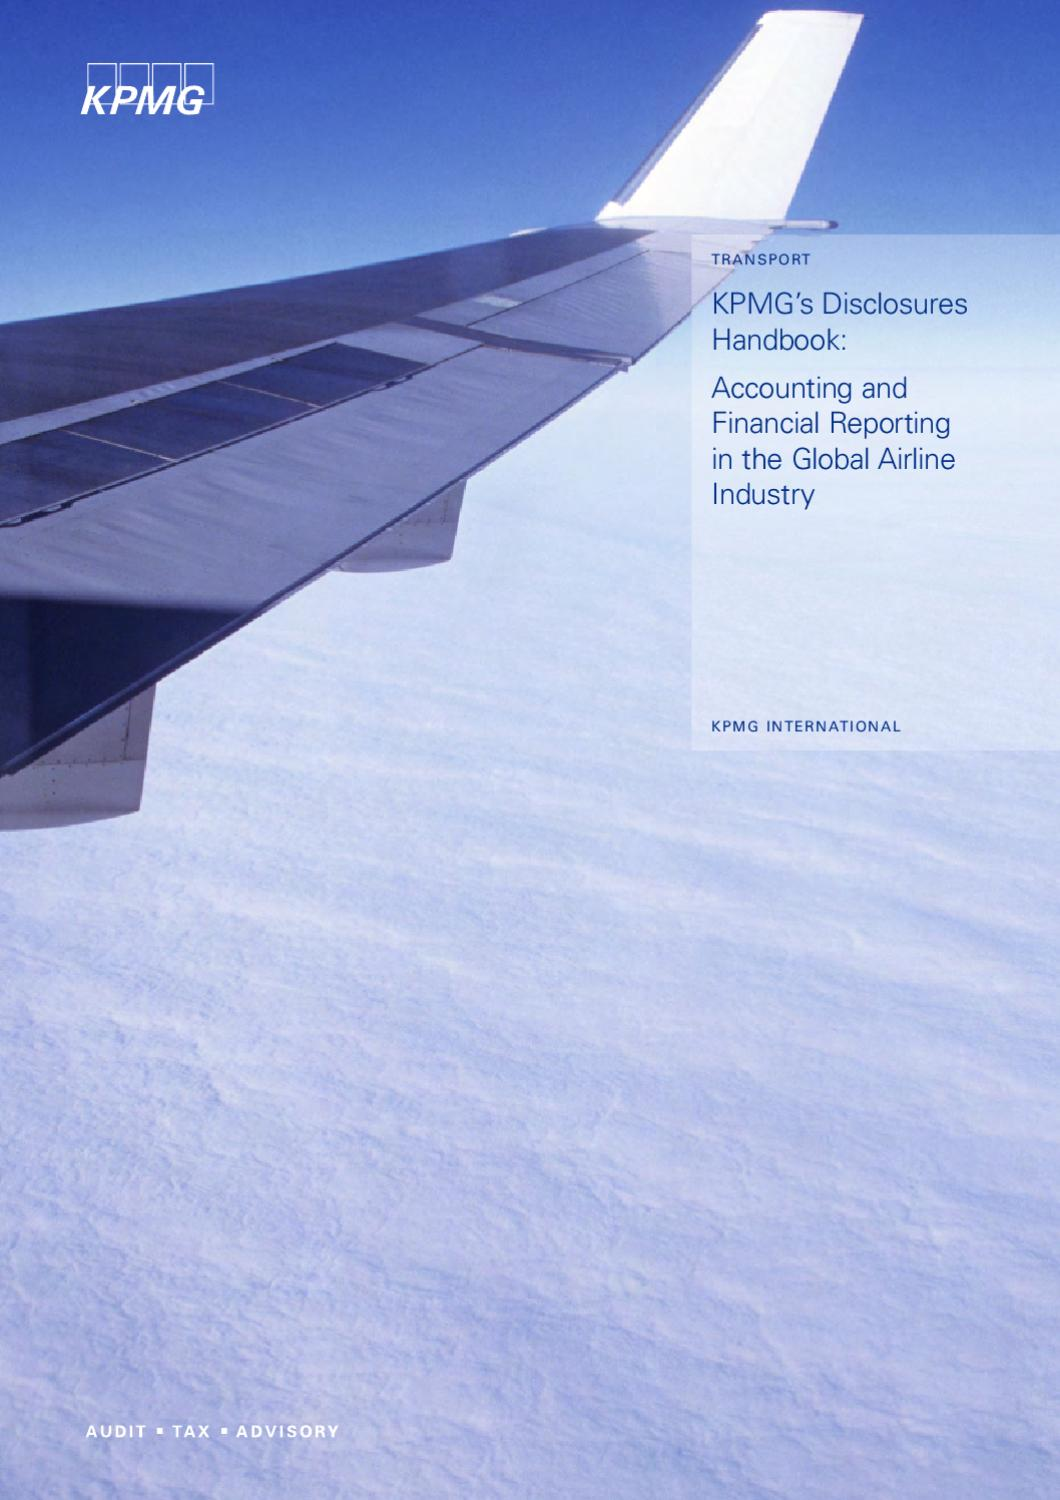 KPMG's Disclosures Hanbook 2005 - Accounting and Financial